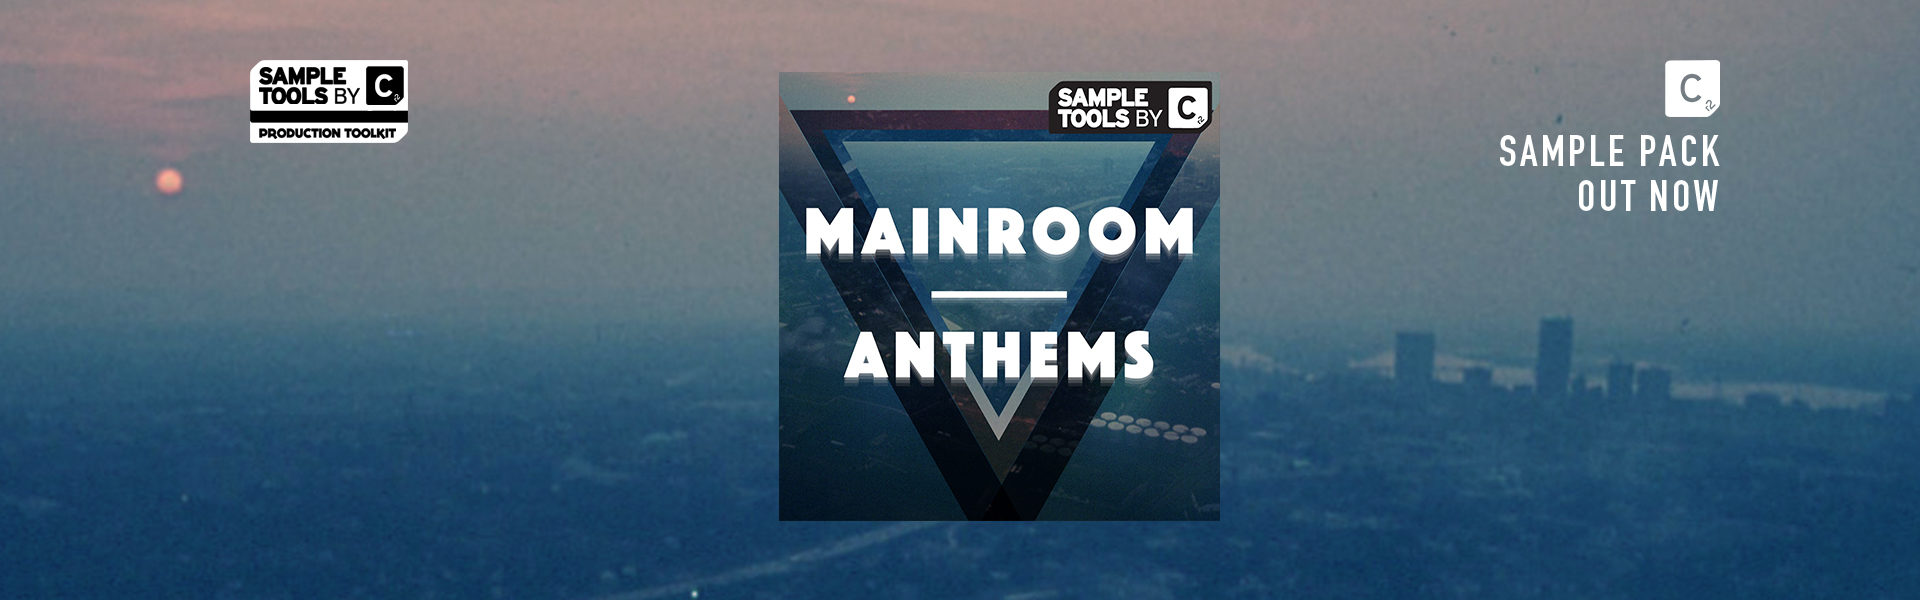 [Latest Release] Mainroom Anthems